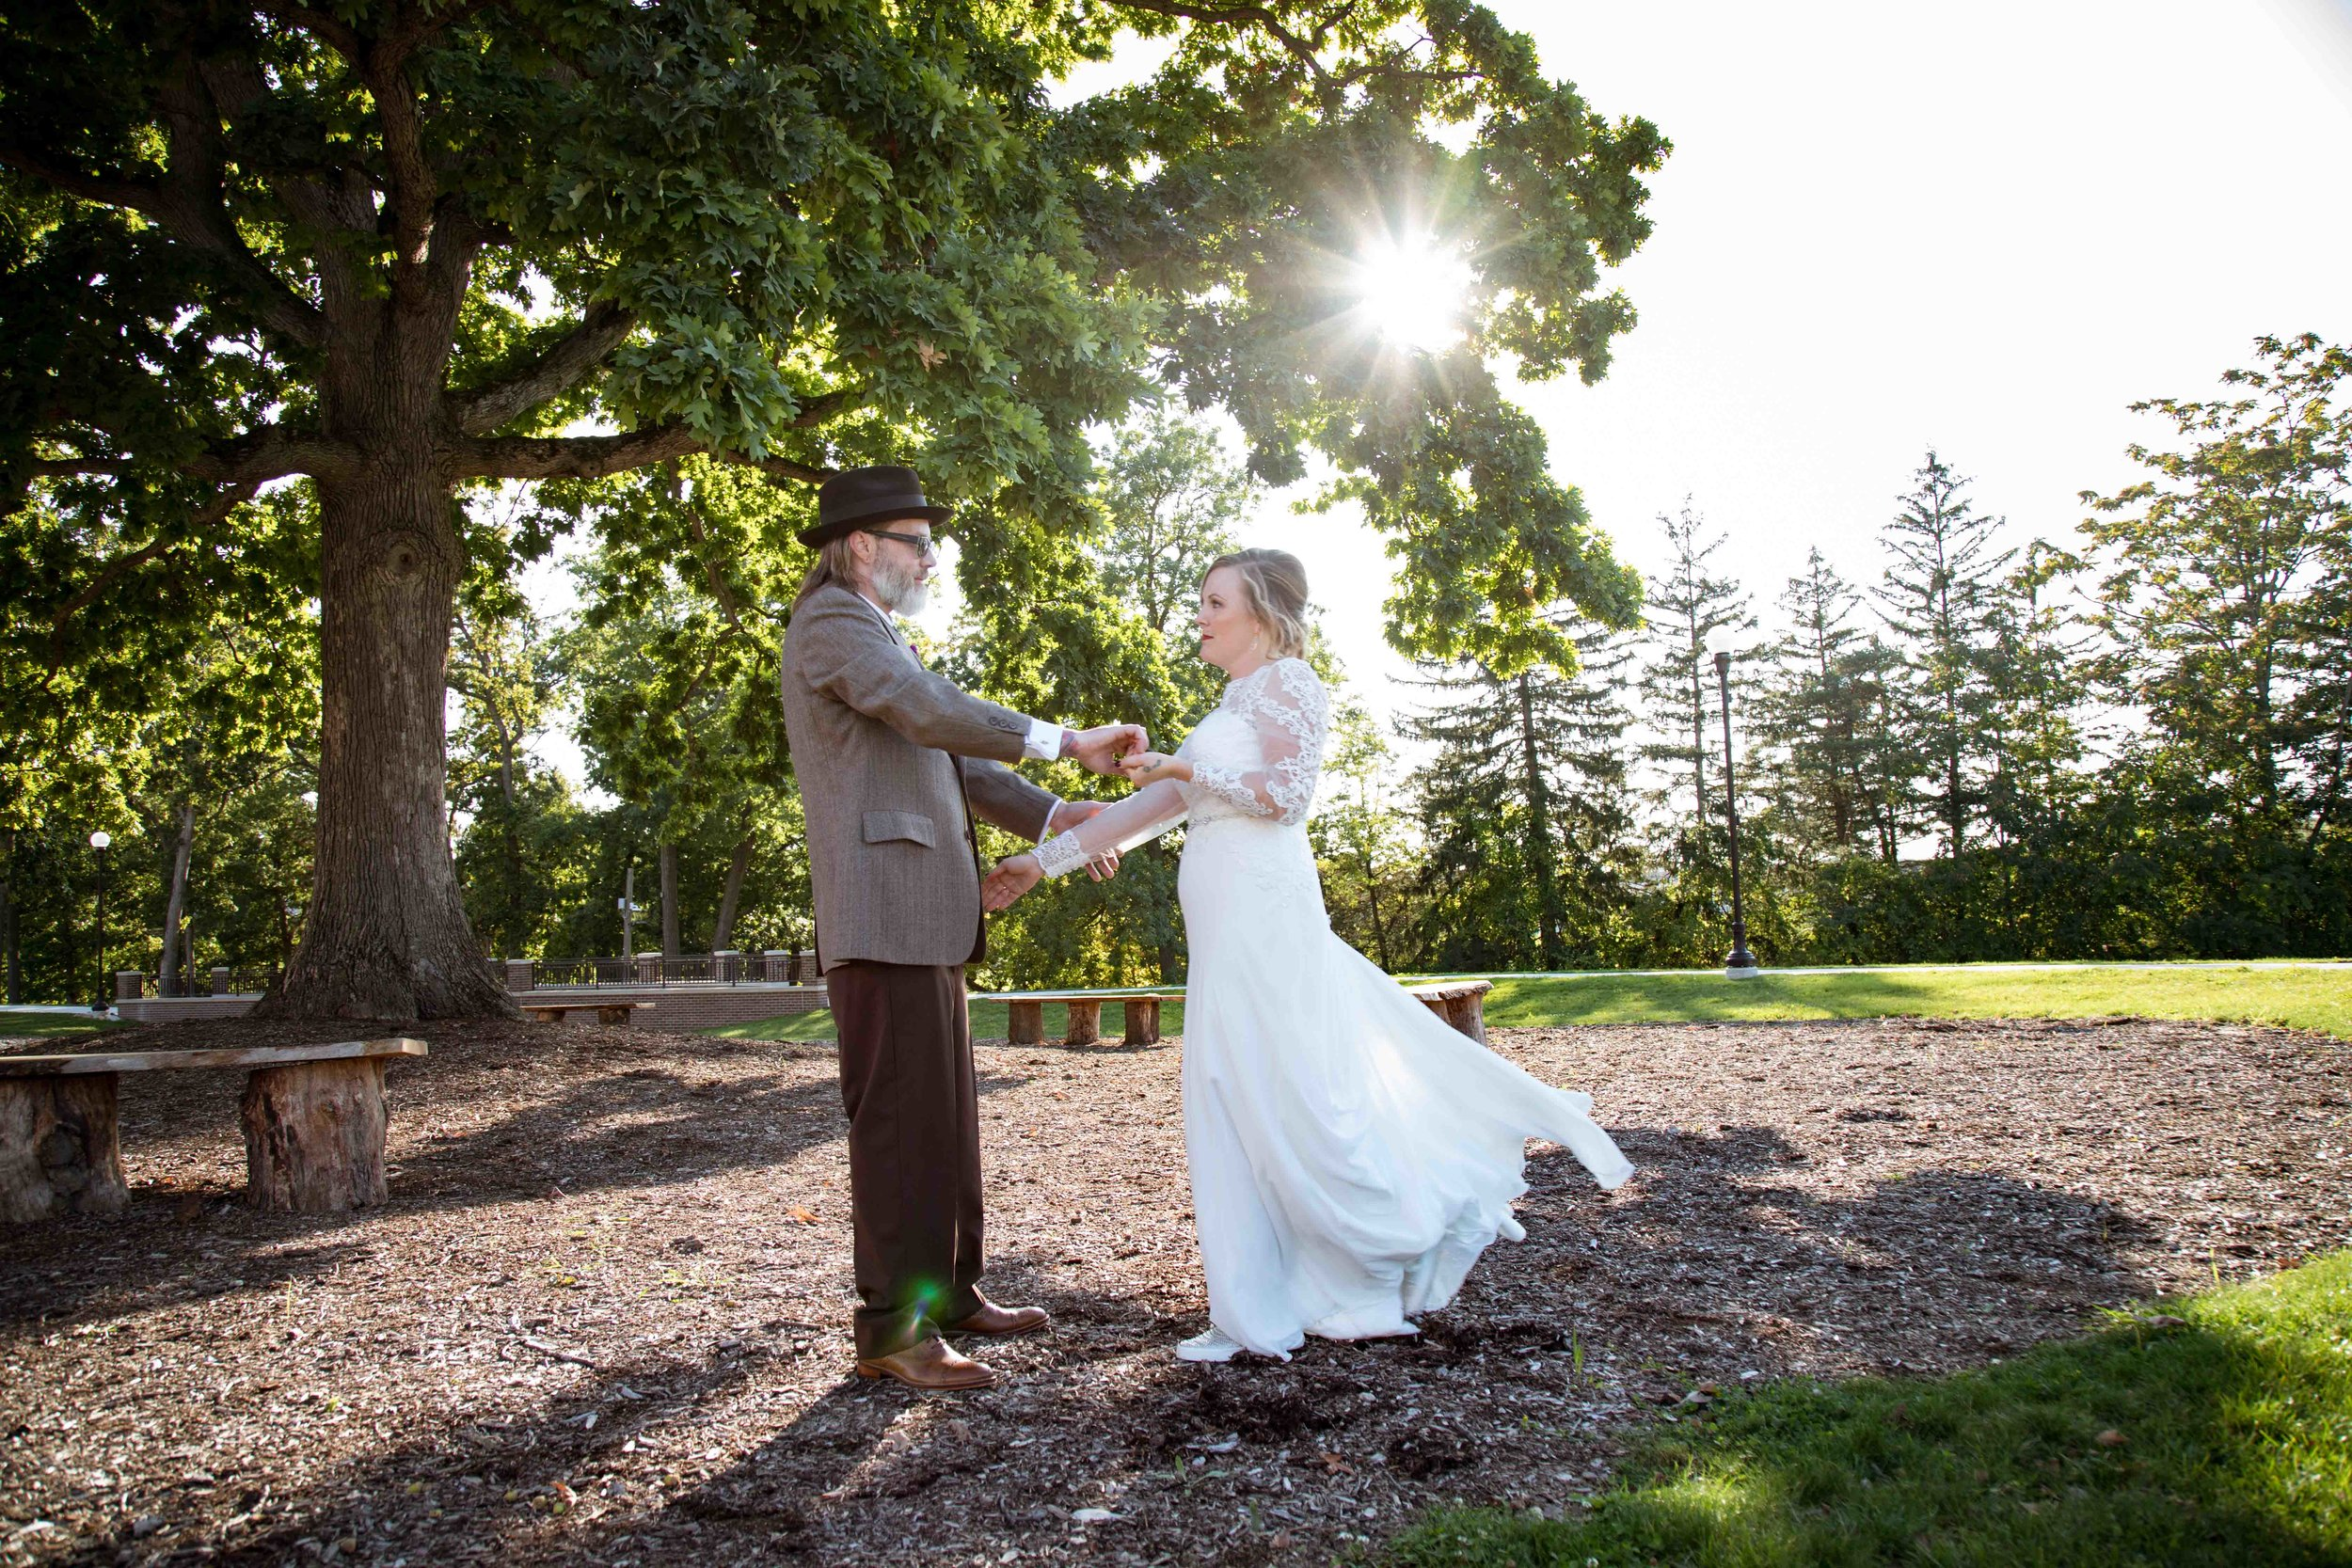 Bride and Groom dance in front of a setting sun